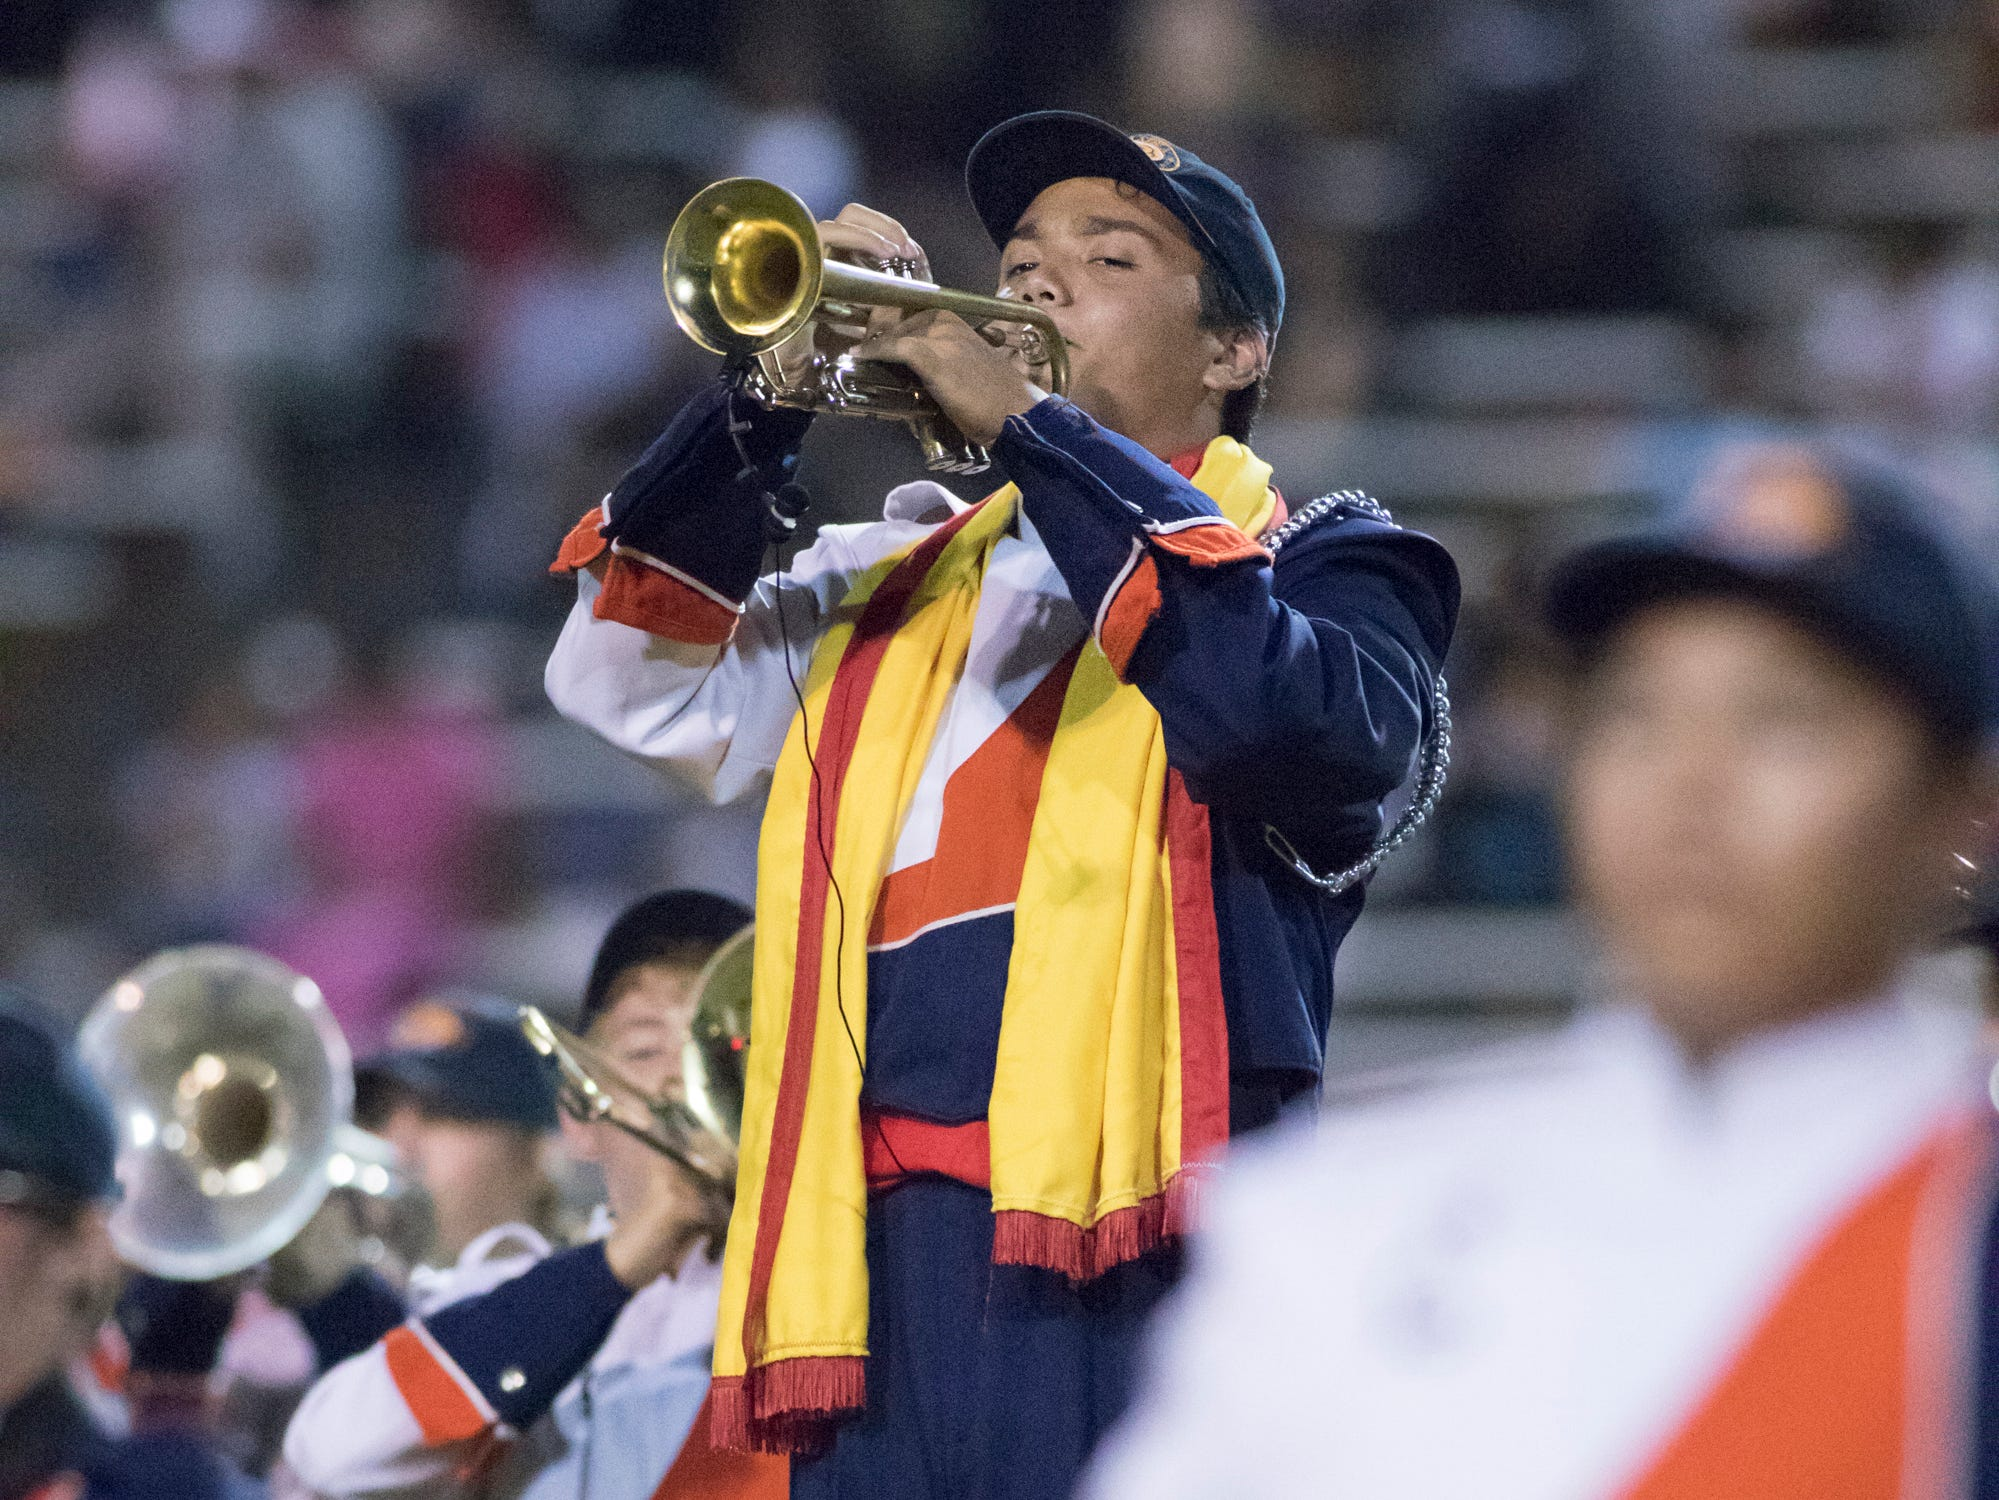 The Gators marching band performs during halftime of the Pine Forest vs Escambia football game at Escambia High School in Pensacola on Friday, September 28, 2018.